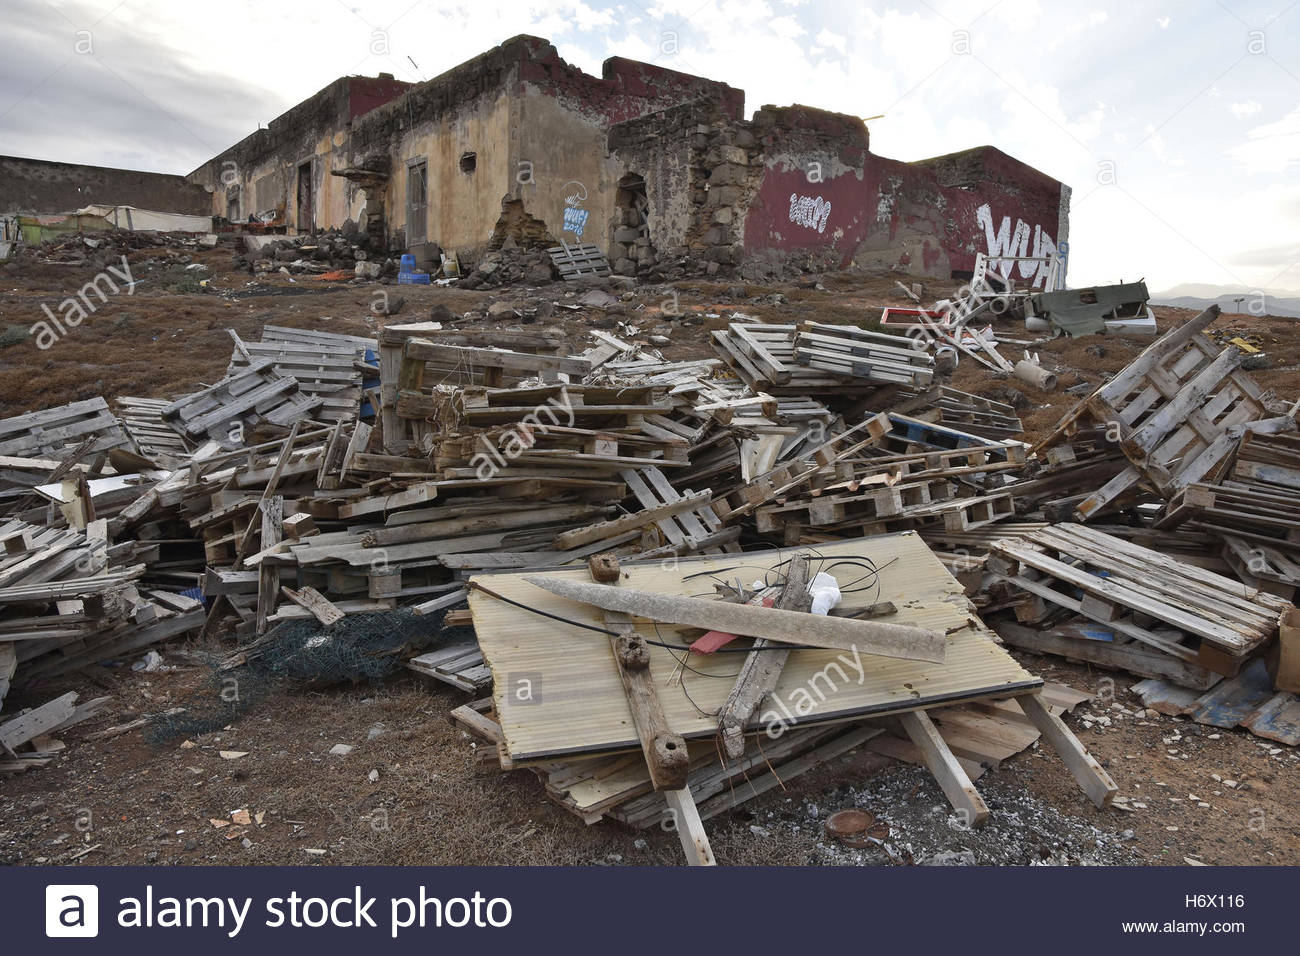 Rubbish junk dumped next to abandoned derelict house in Gran Canaria Canary Islands Spain - Stock Image